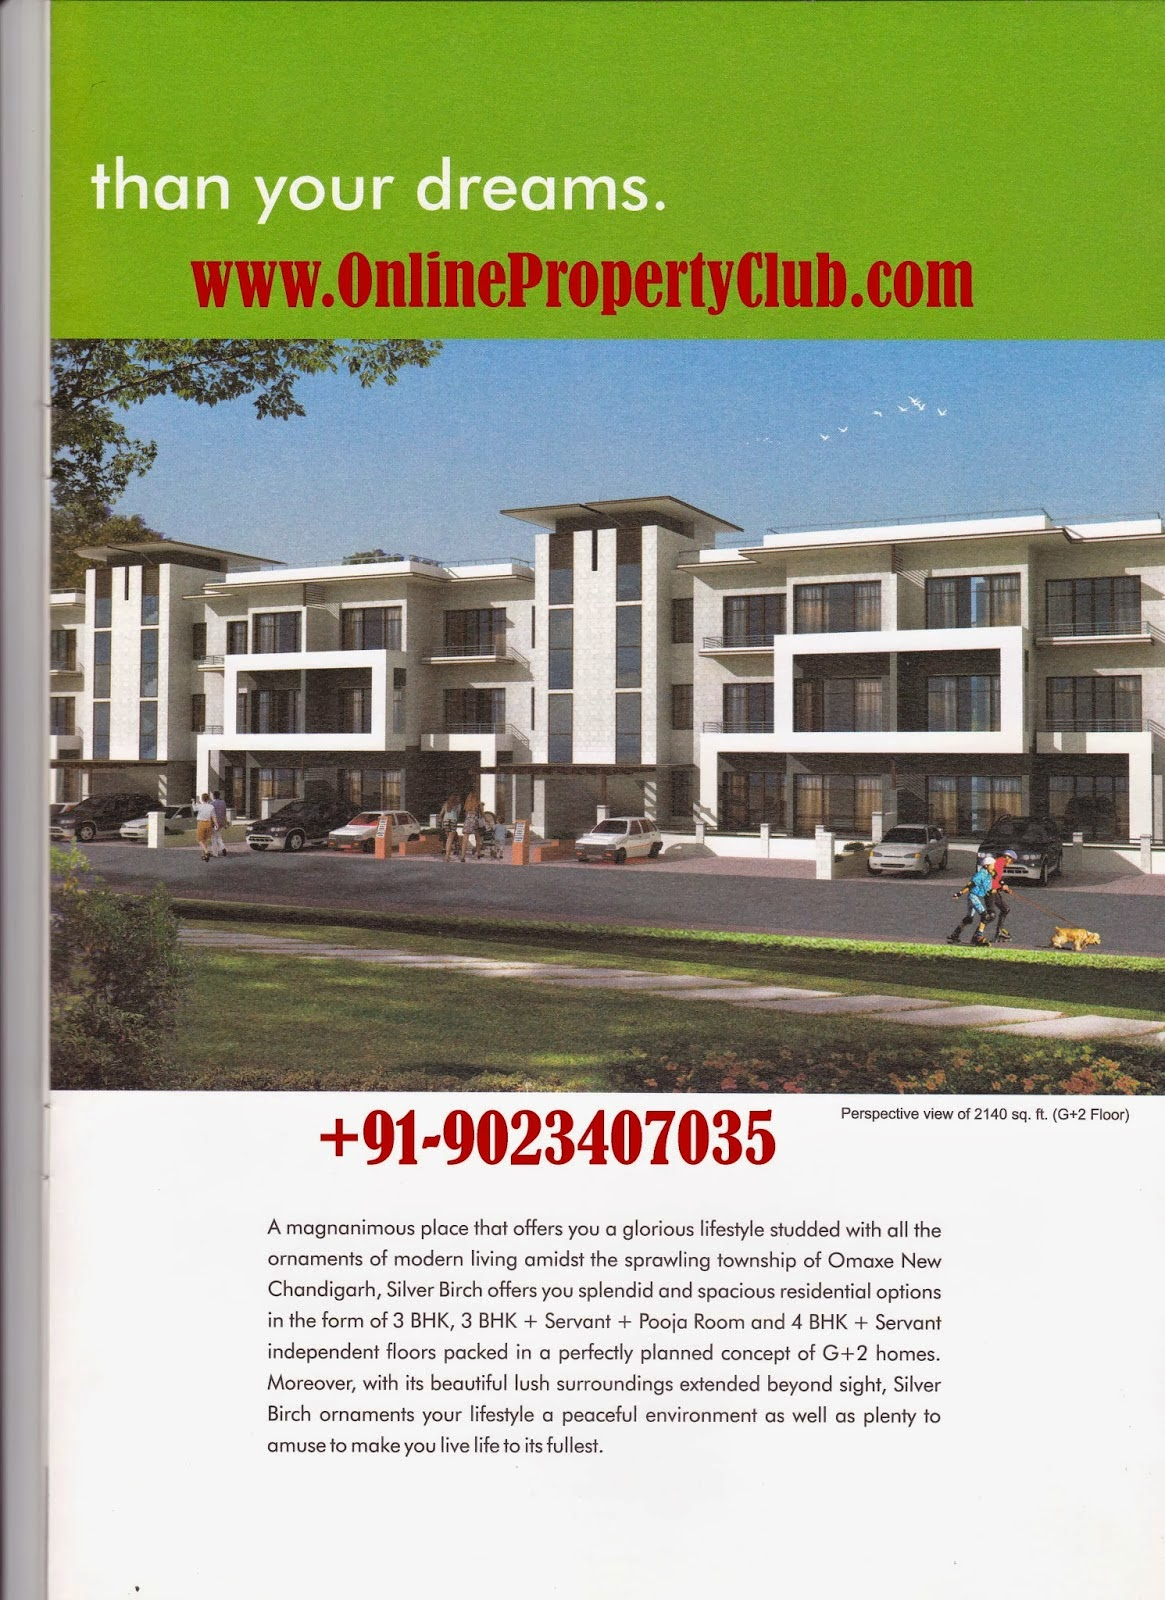 Omaxe Silver Birch, 2,3,4 BHK Residential Flats / Apartments, Omaxe Silver Birch2,3,4 Bedrooms Property for Sale in Mullanpur, New Chandigarh - Omaxe .